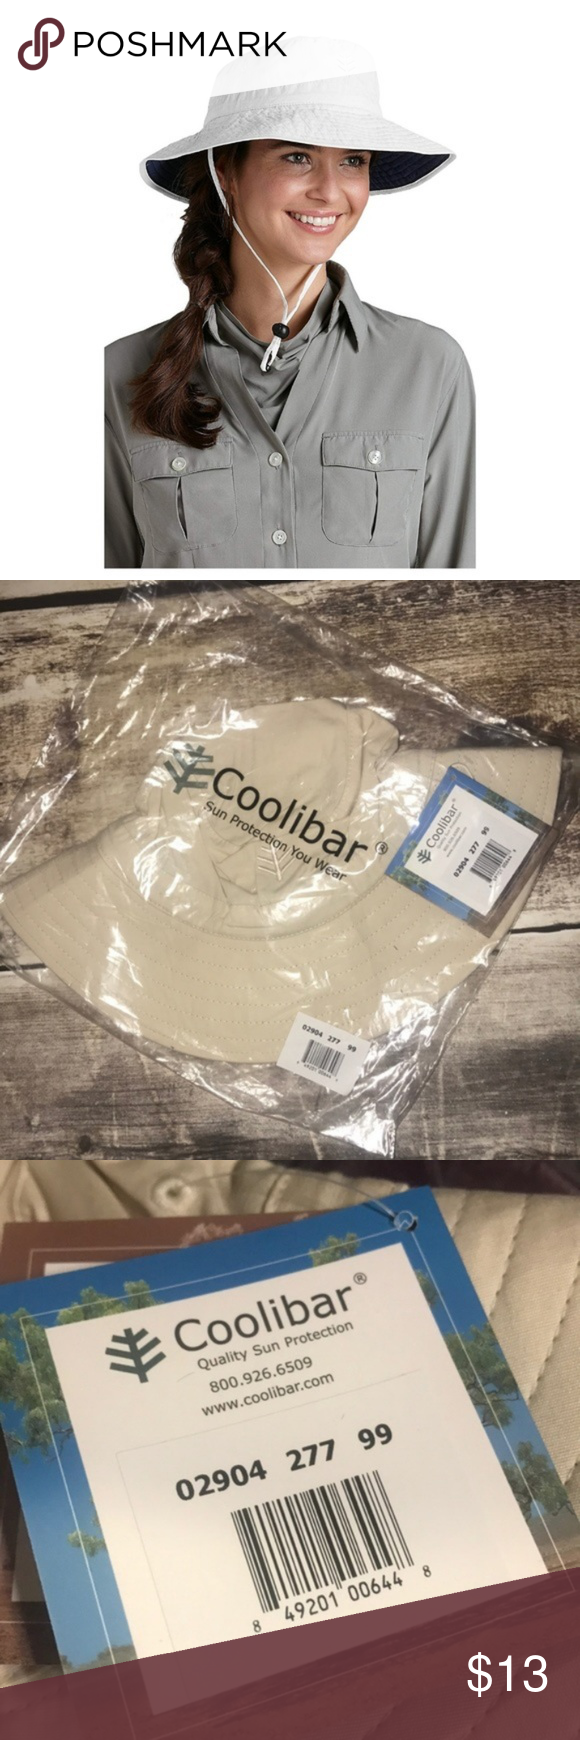 bdf66150728 Coolibar UPF 50 Plus Featherweight Bucket Hat Coolibar UPF 50 Plus  Featherweight Bucket Hat Brand new